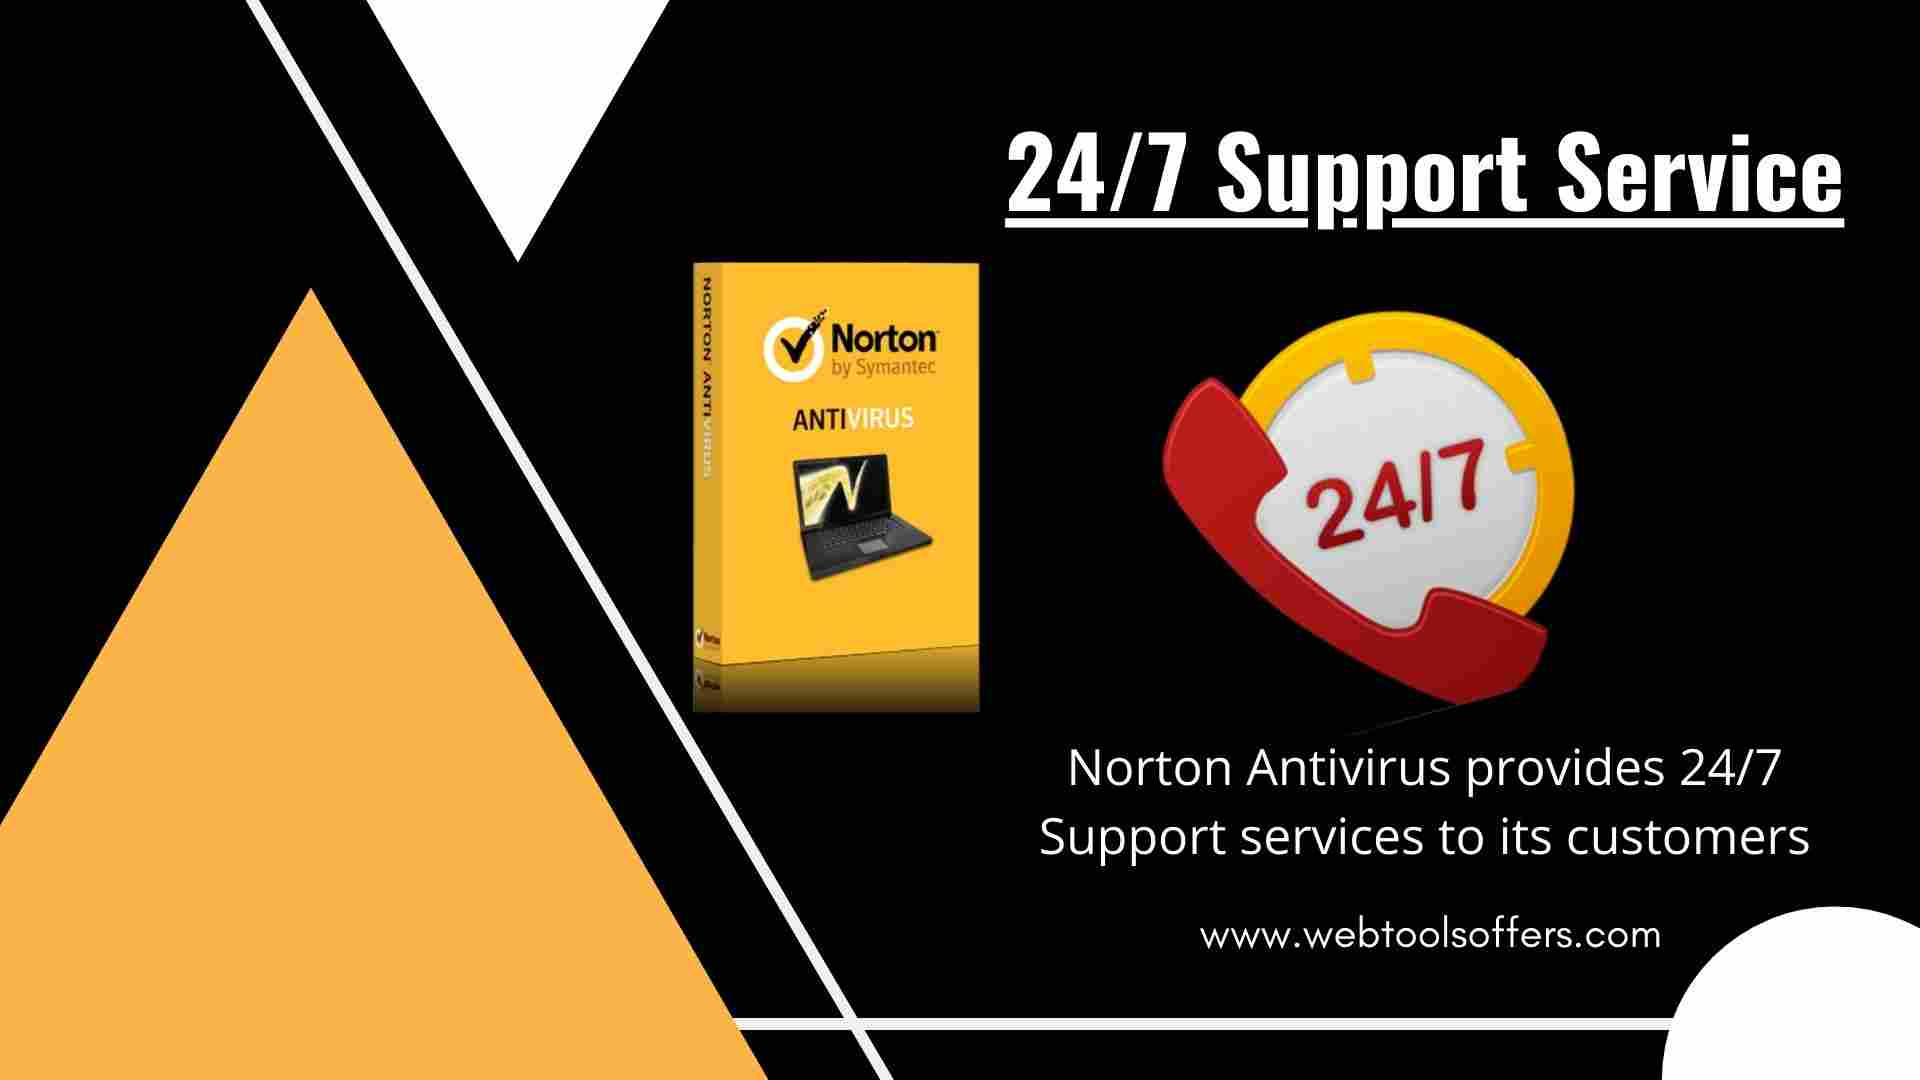 Norton Support Service